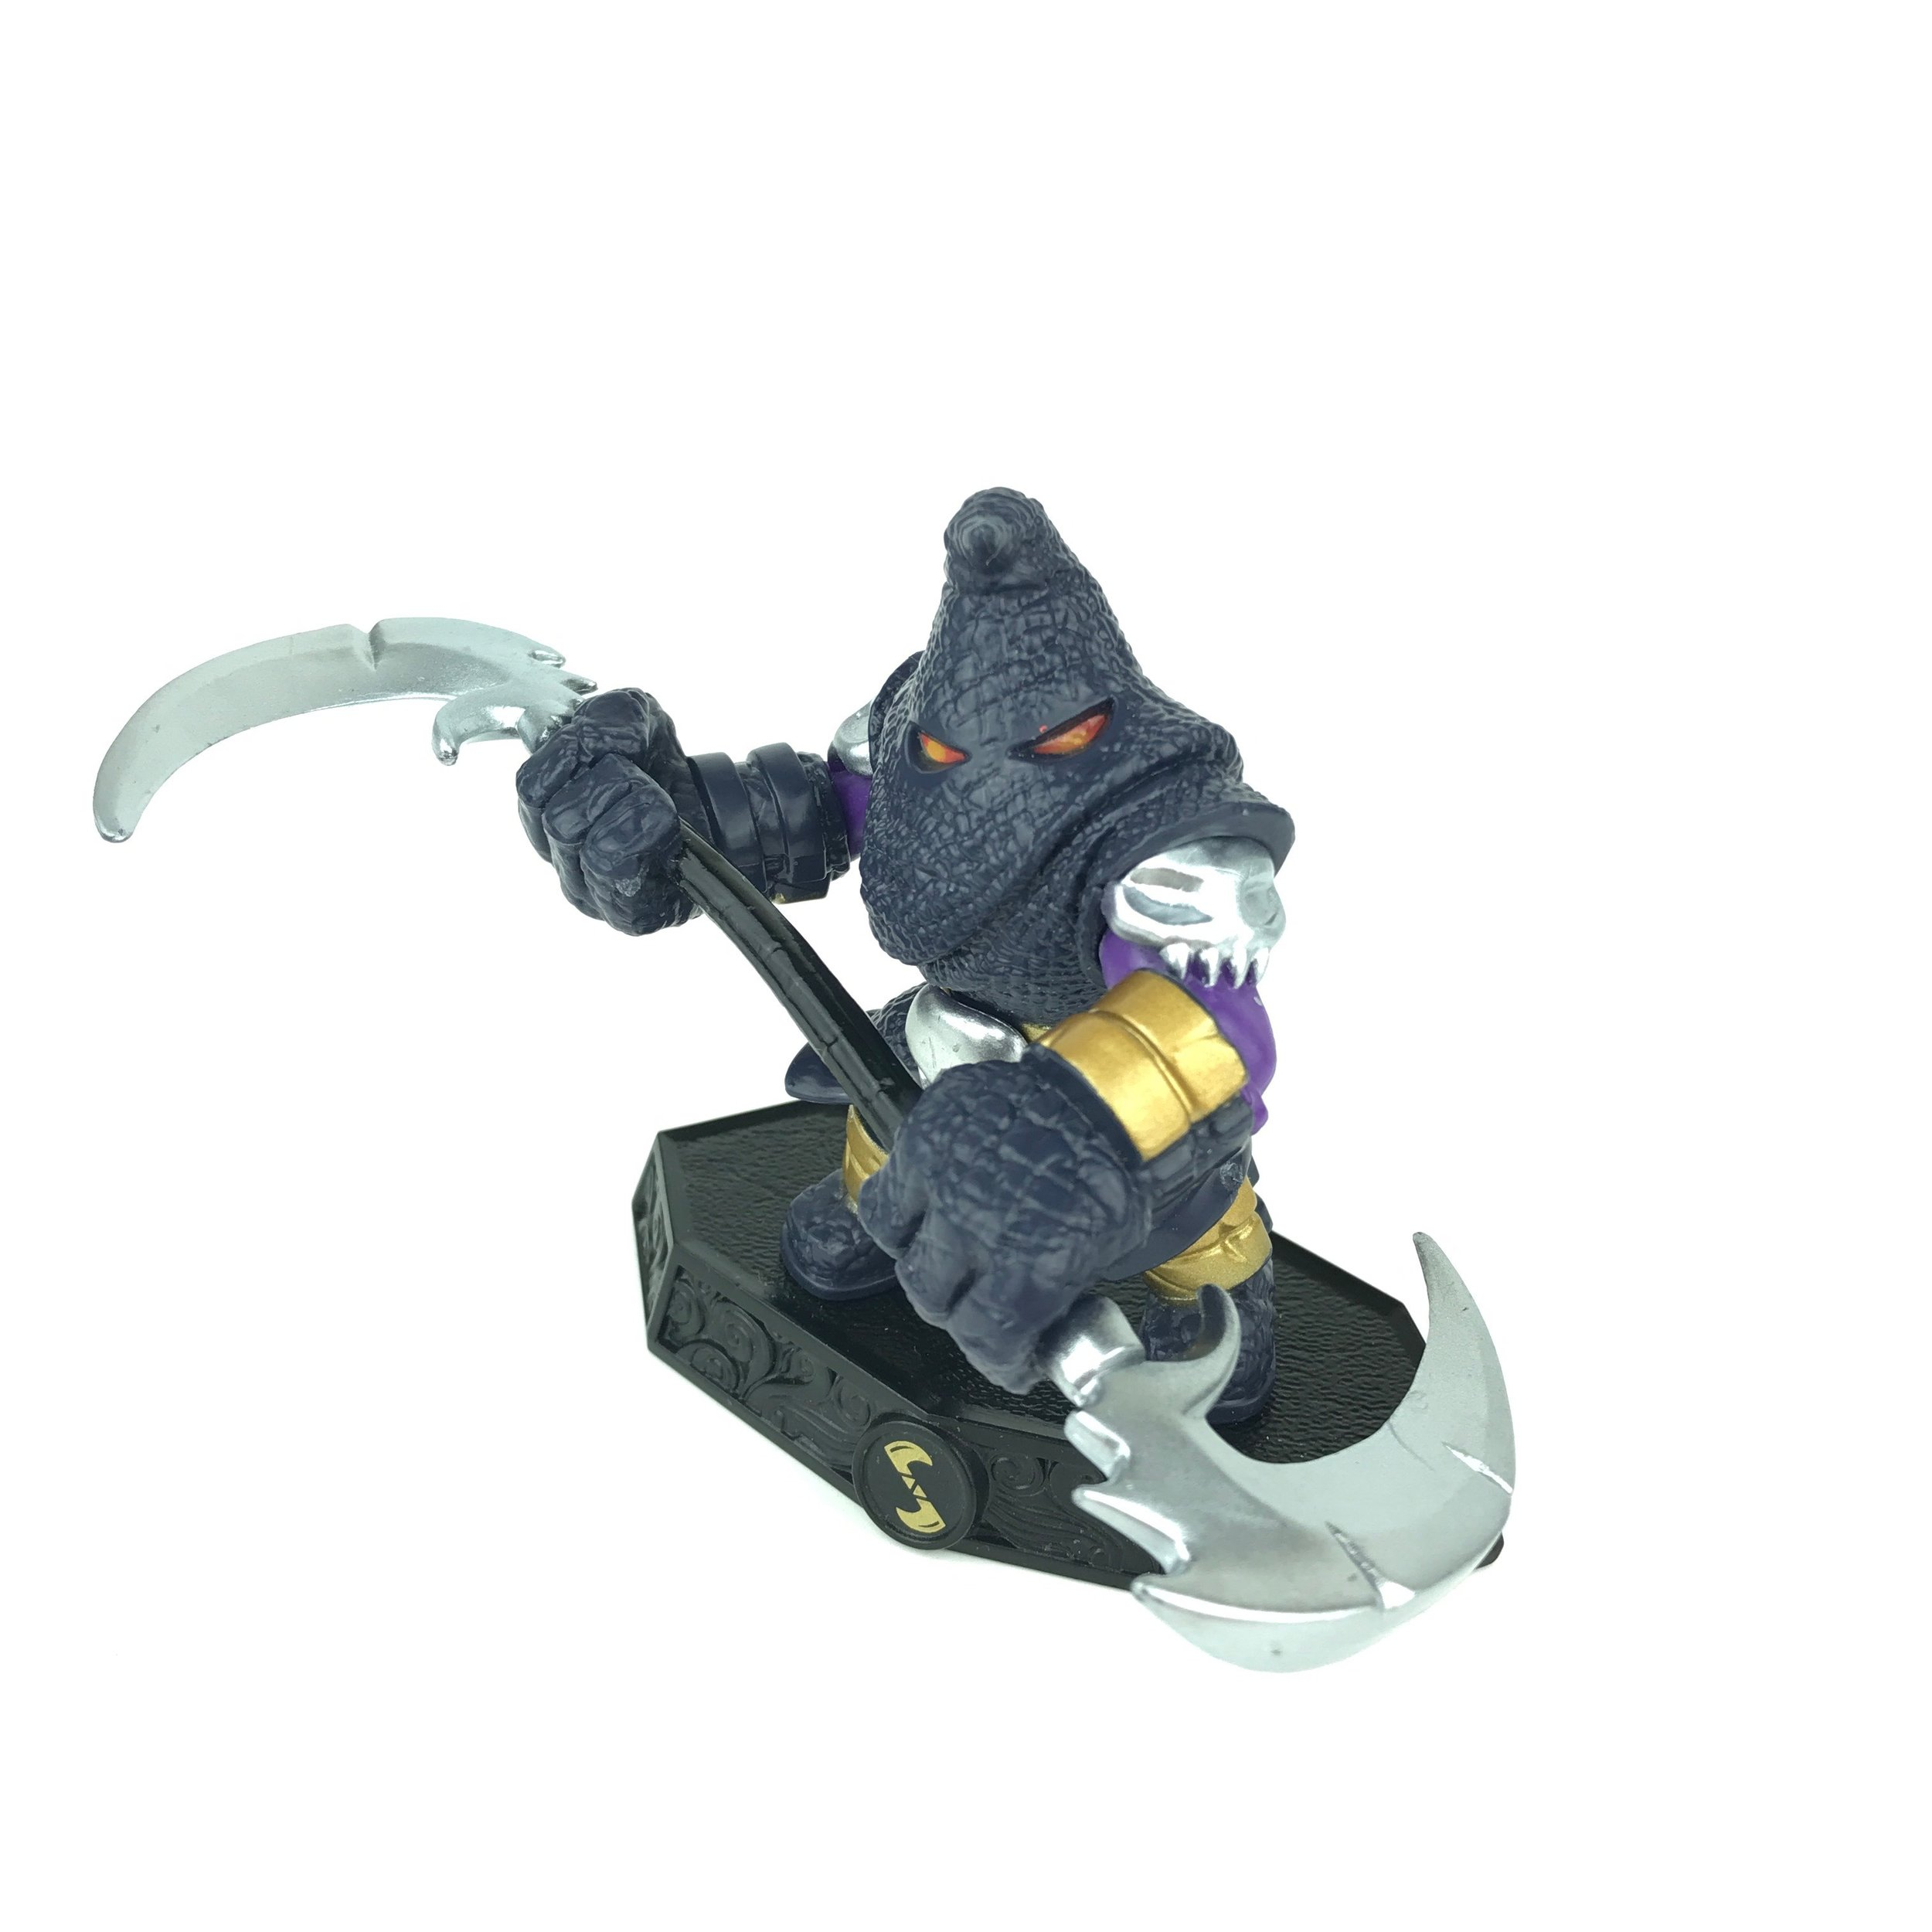 Sickle Sensei Skylander toy